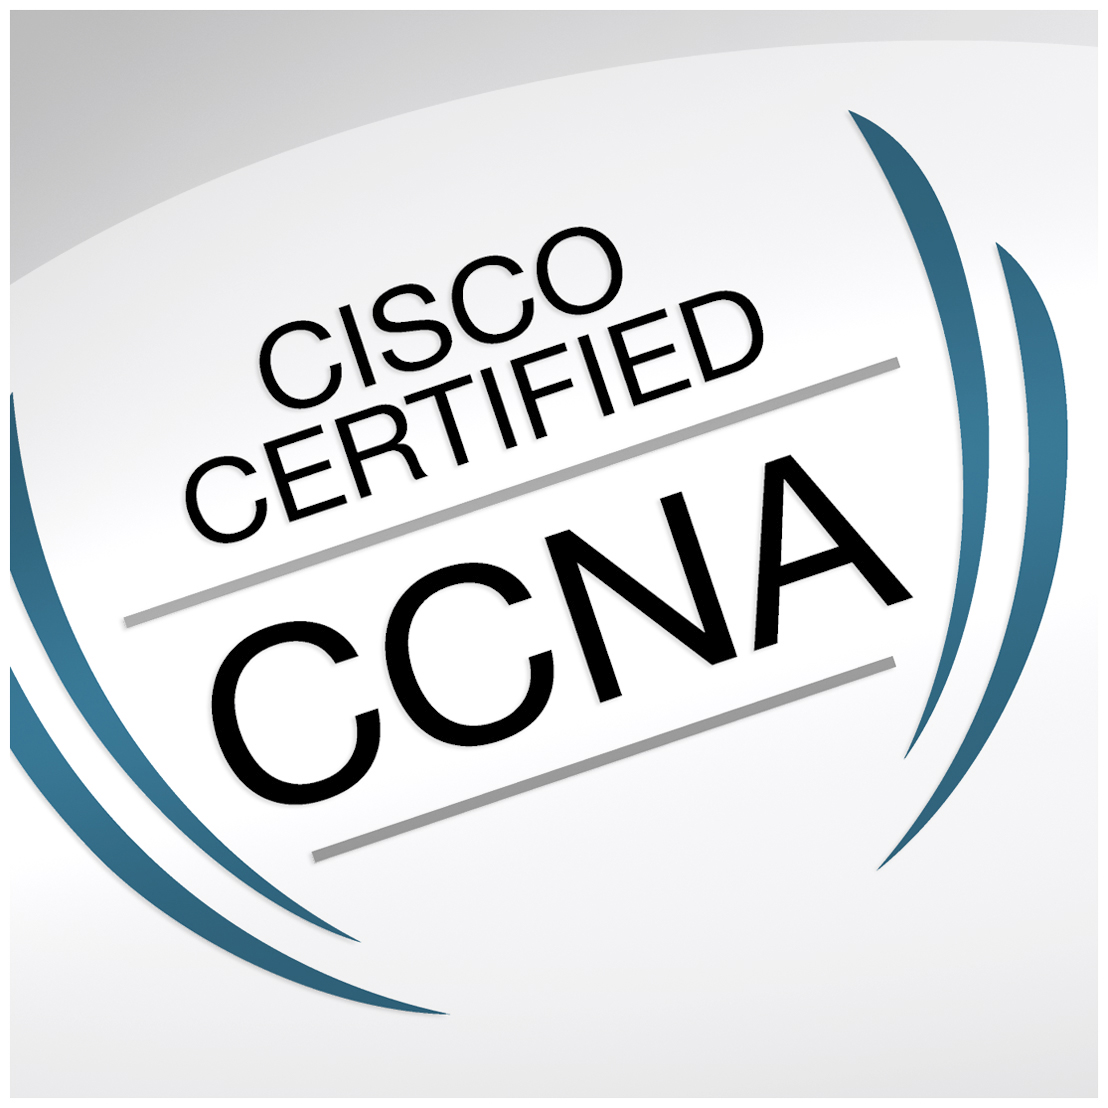 Why are Cisco training courses worth taking?